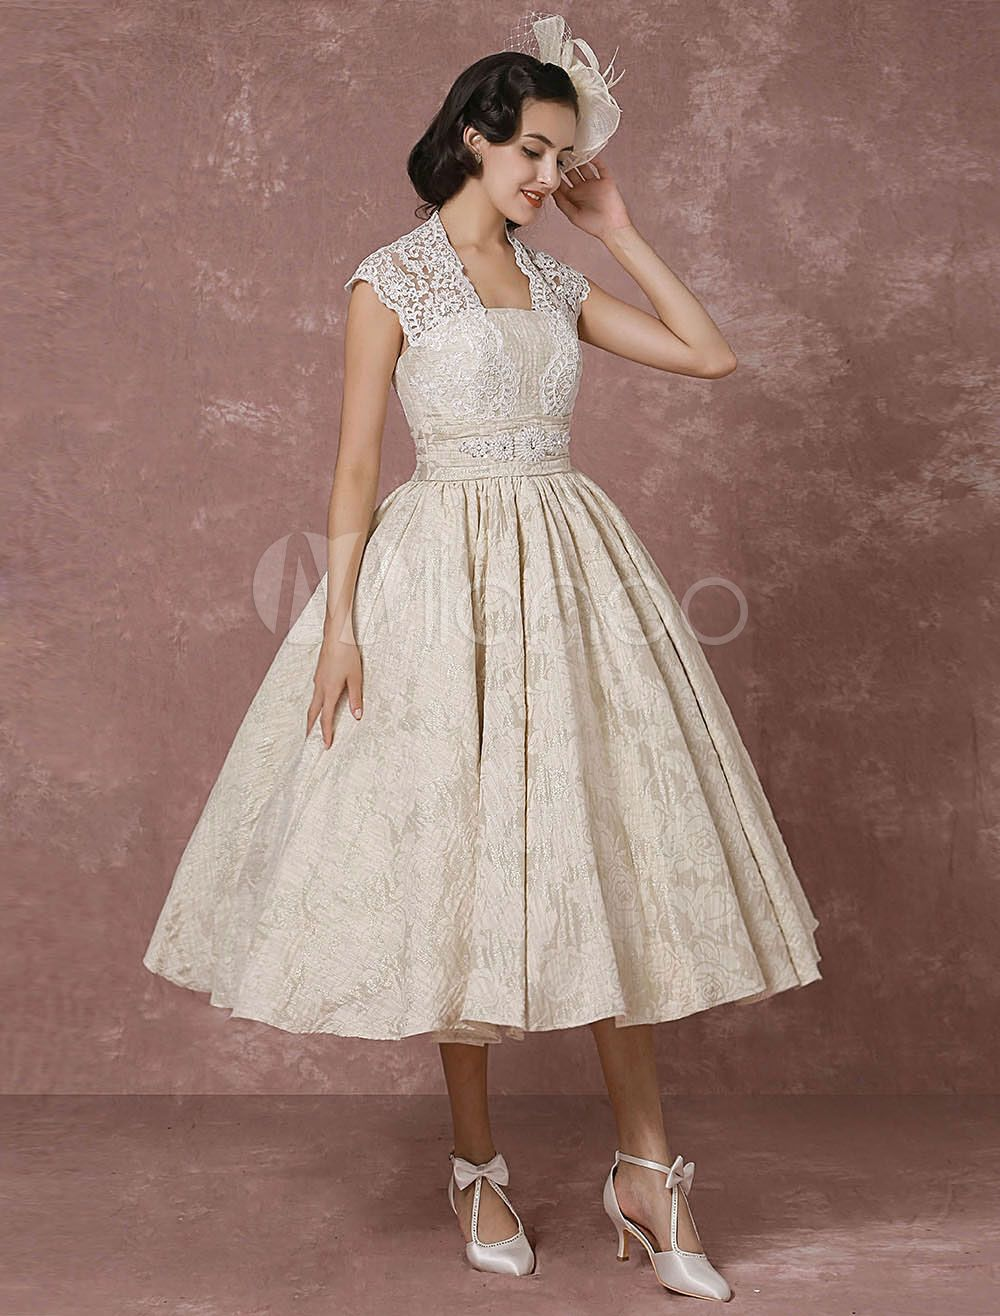 Short Wedding Dress Lace Champagne Vintage Bridal Dress Ball Gown Beading Backless Tea Length Bridal Gown With Sash Milanoo Short Lace Wedding Dress Short Wedding Dress Lace Wedding Dress Vintage